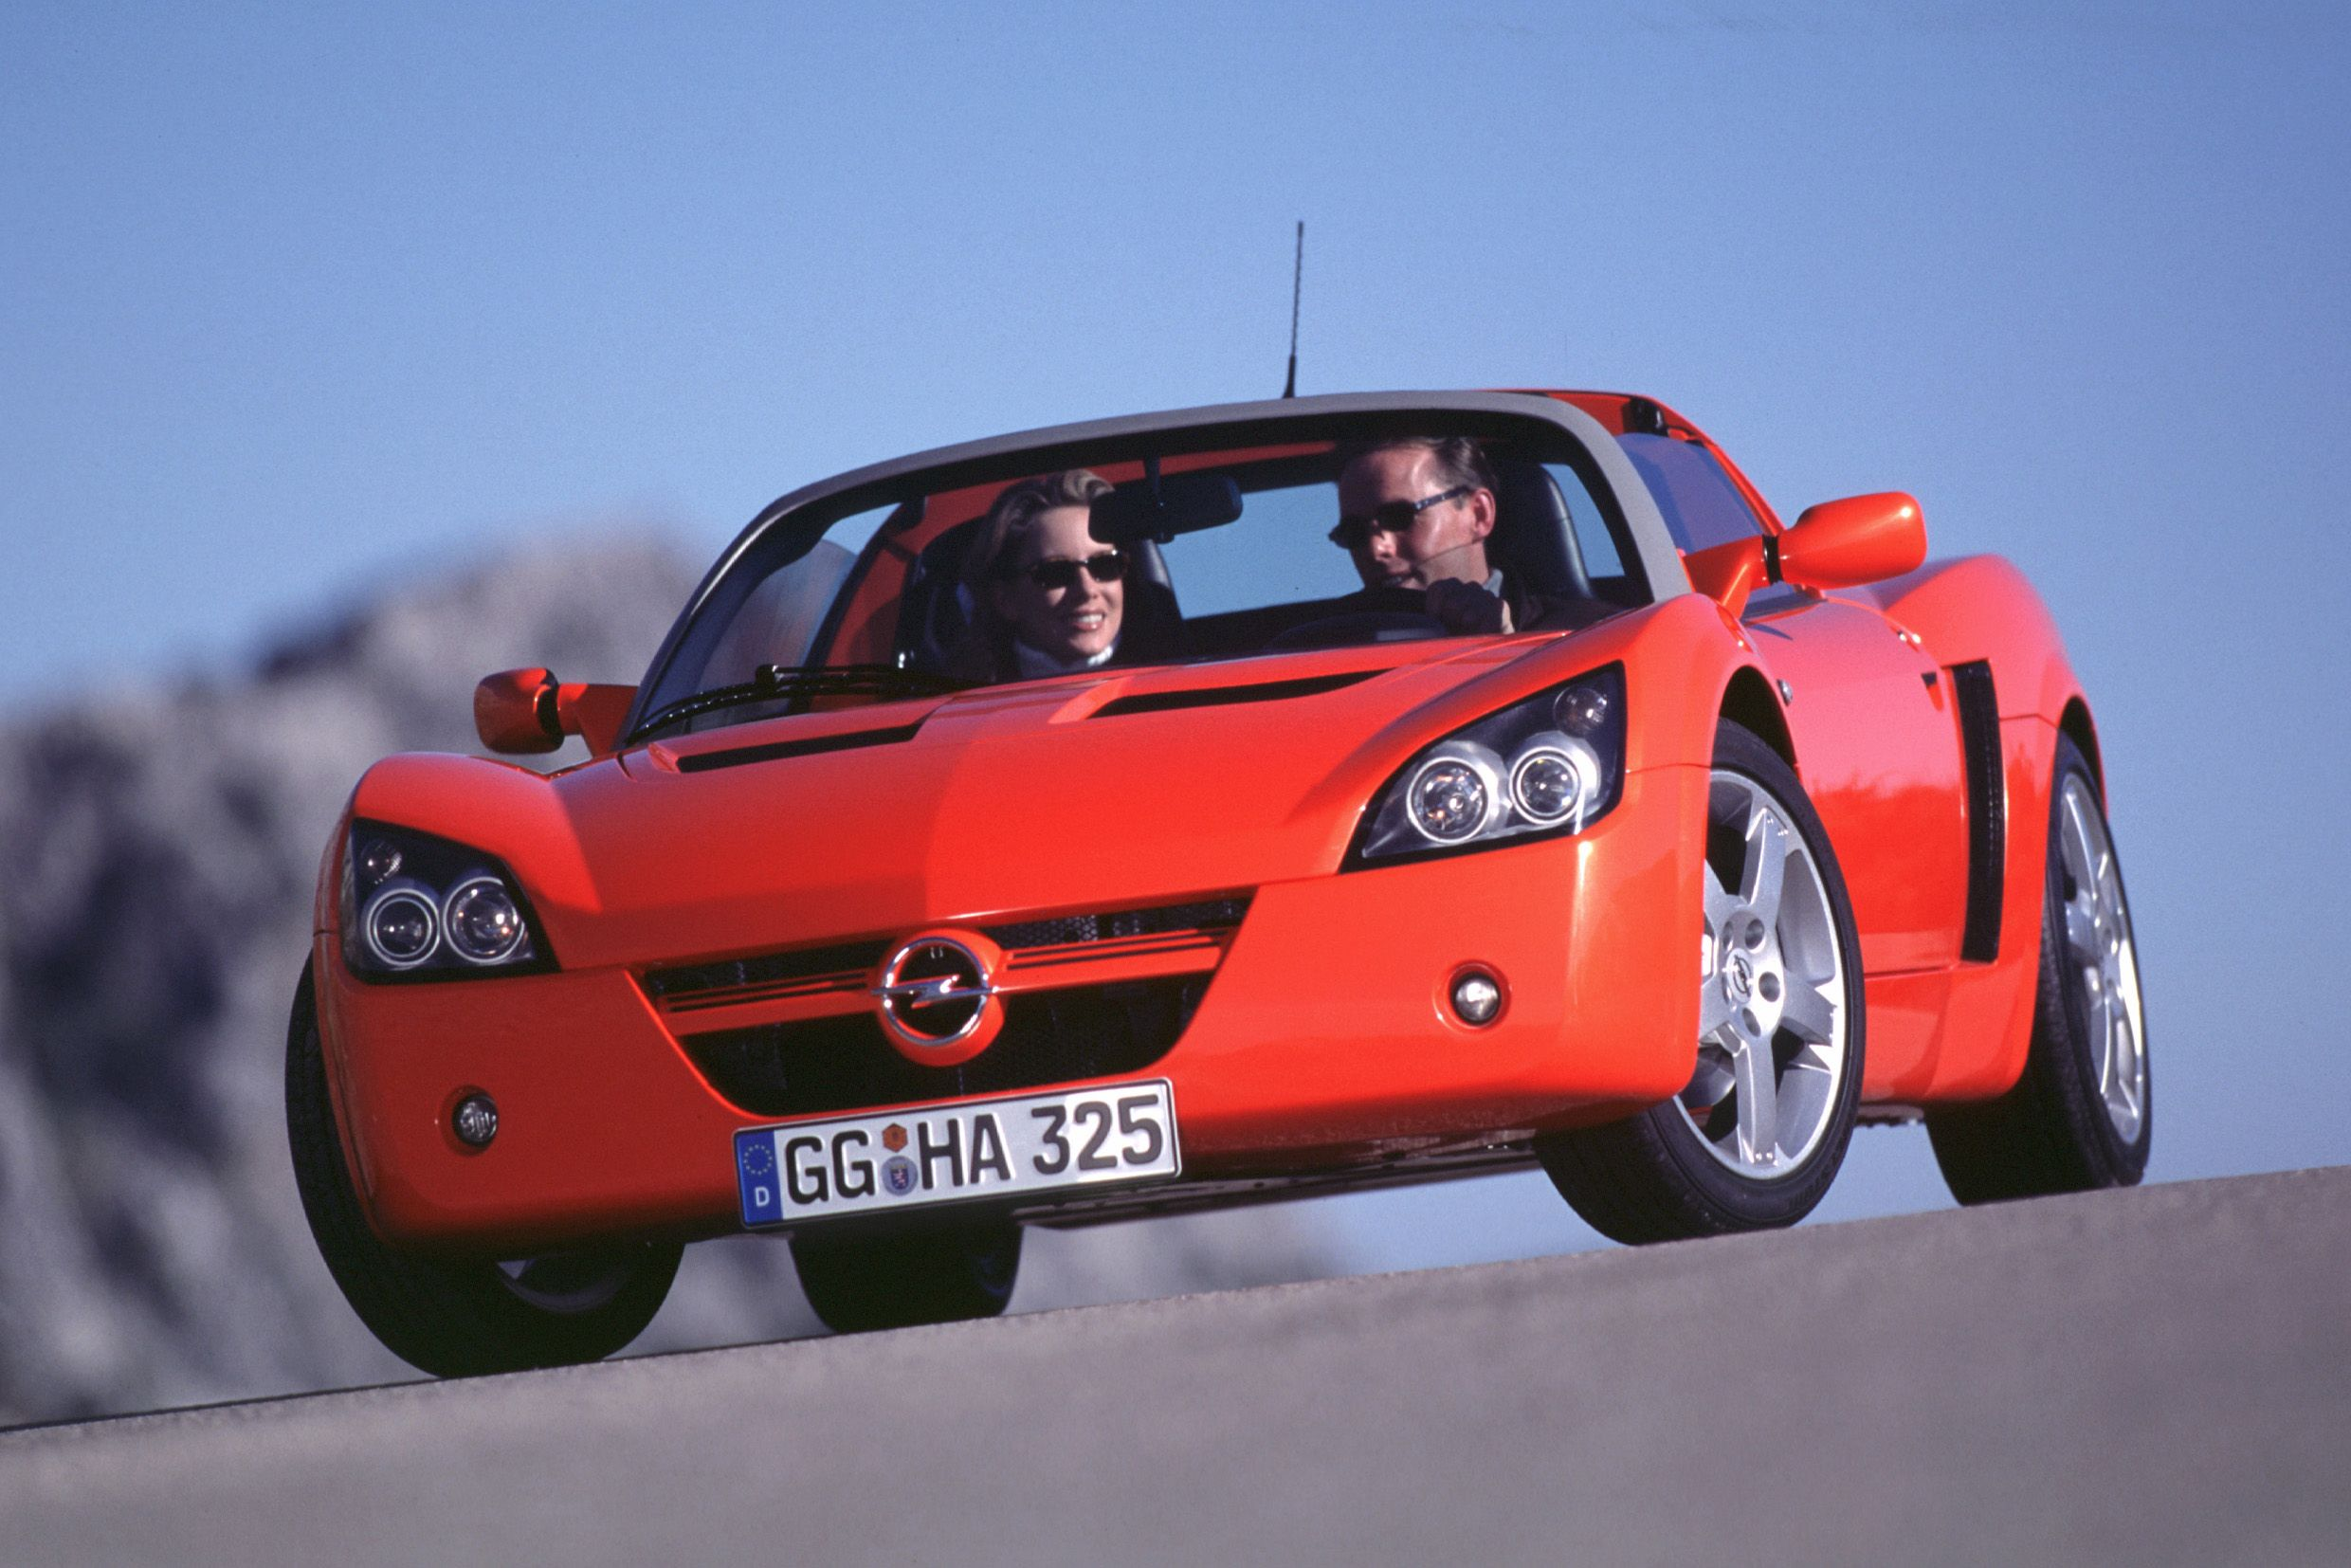 The Opel Speedster Is the Mid-Engine GM Sports Car You Never Knew About